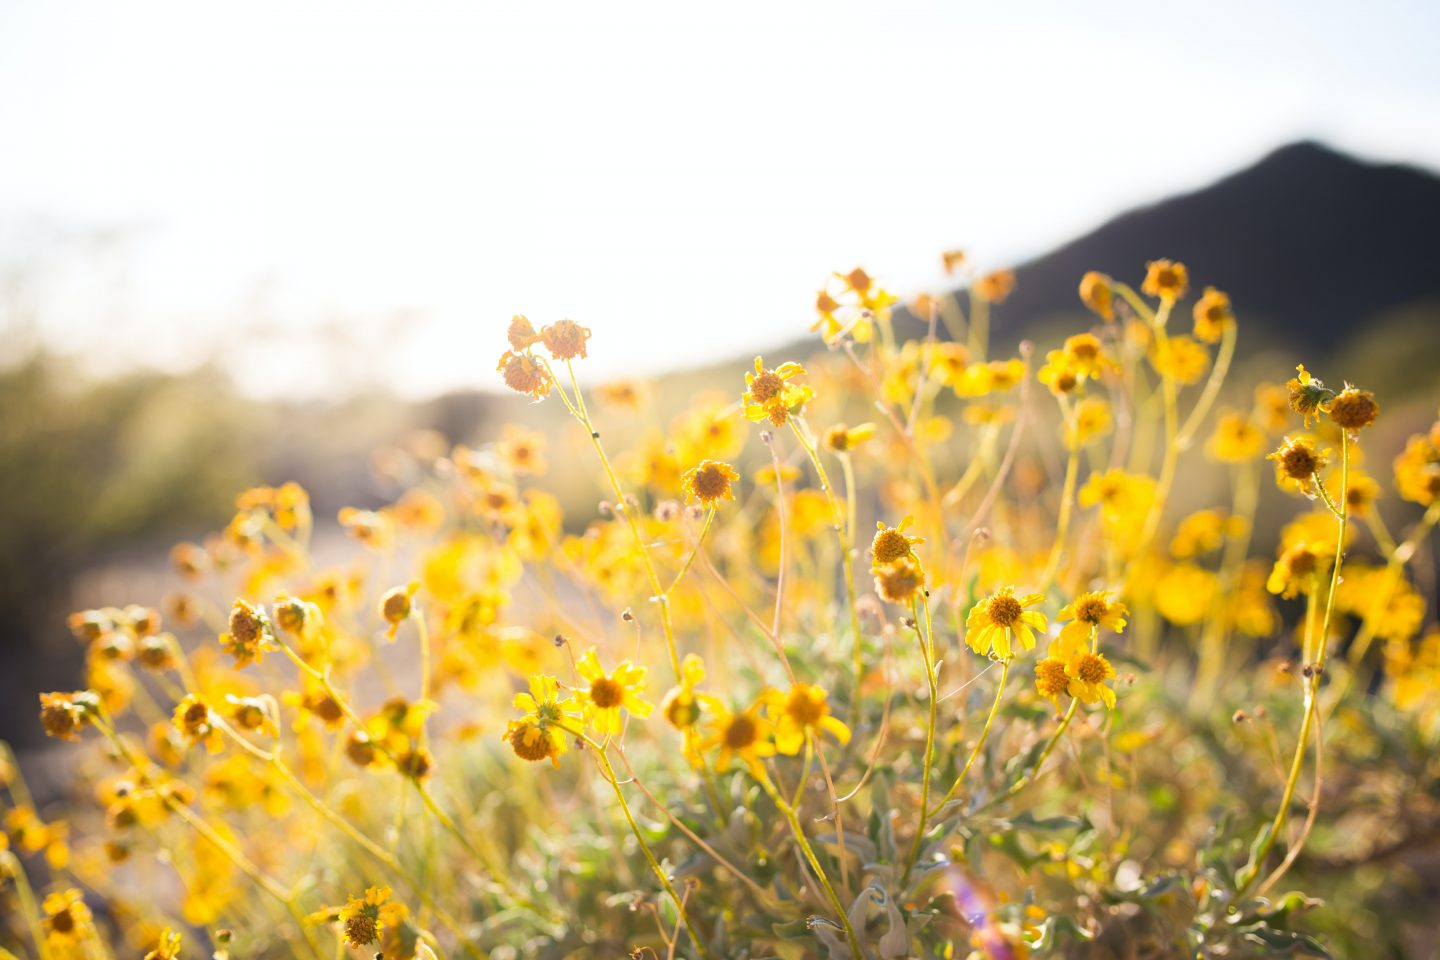 yellow flowers in a field, nature shot, landscape photography